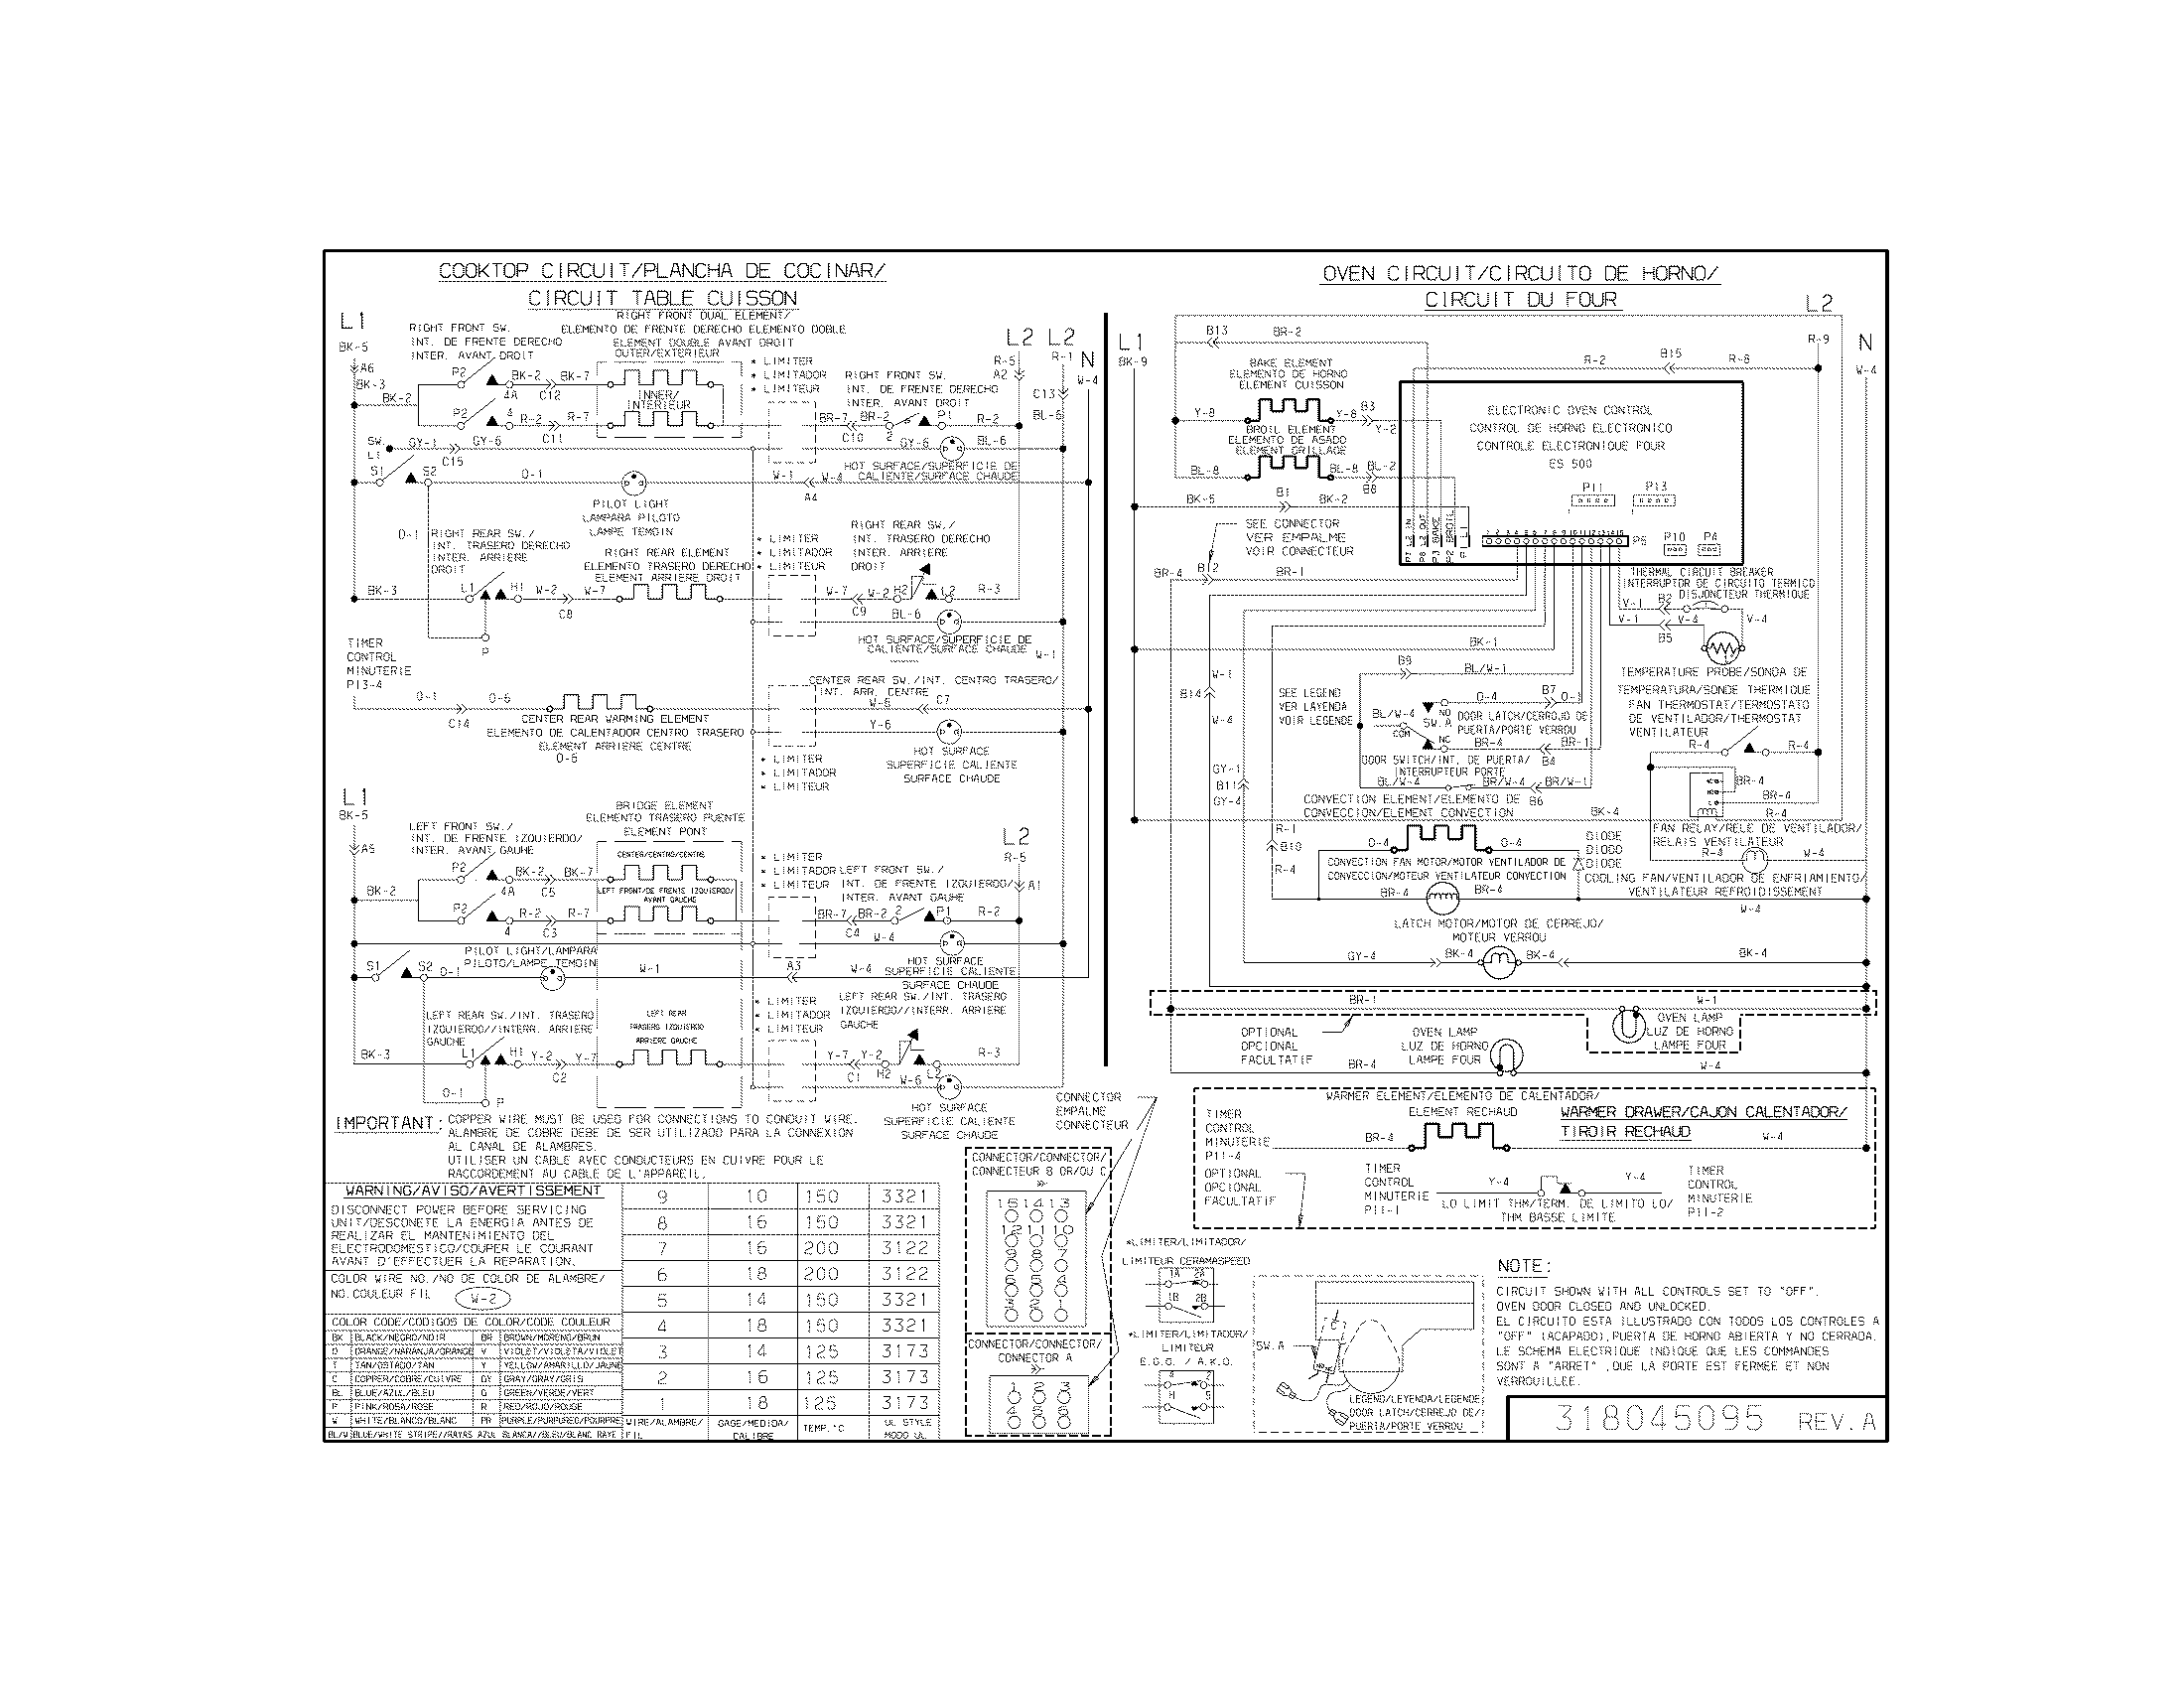 Electrolux Range Wiring Diagram Daily Update Rondaful Motion Led Get Free